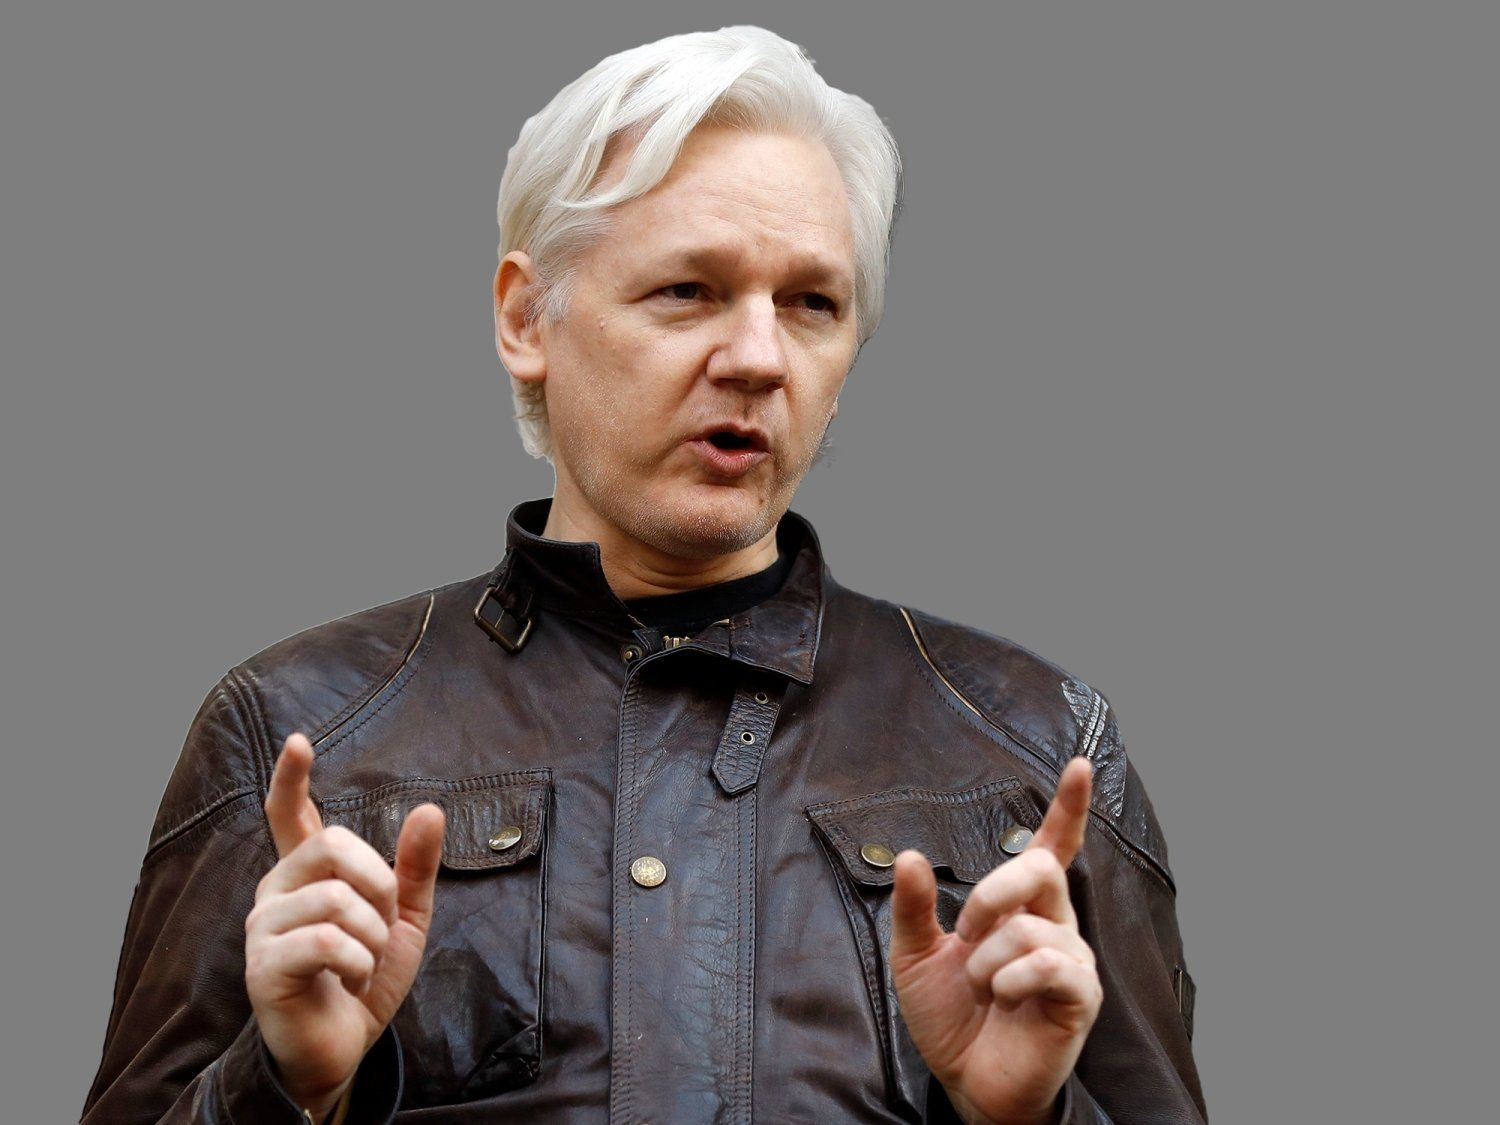 WikiLeaks Warns Journos Not To Publish 140 'False' Statements About Assange